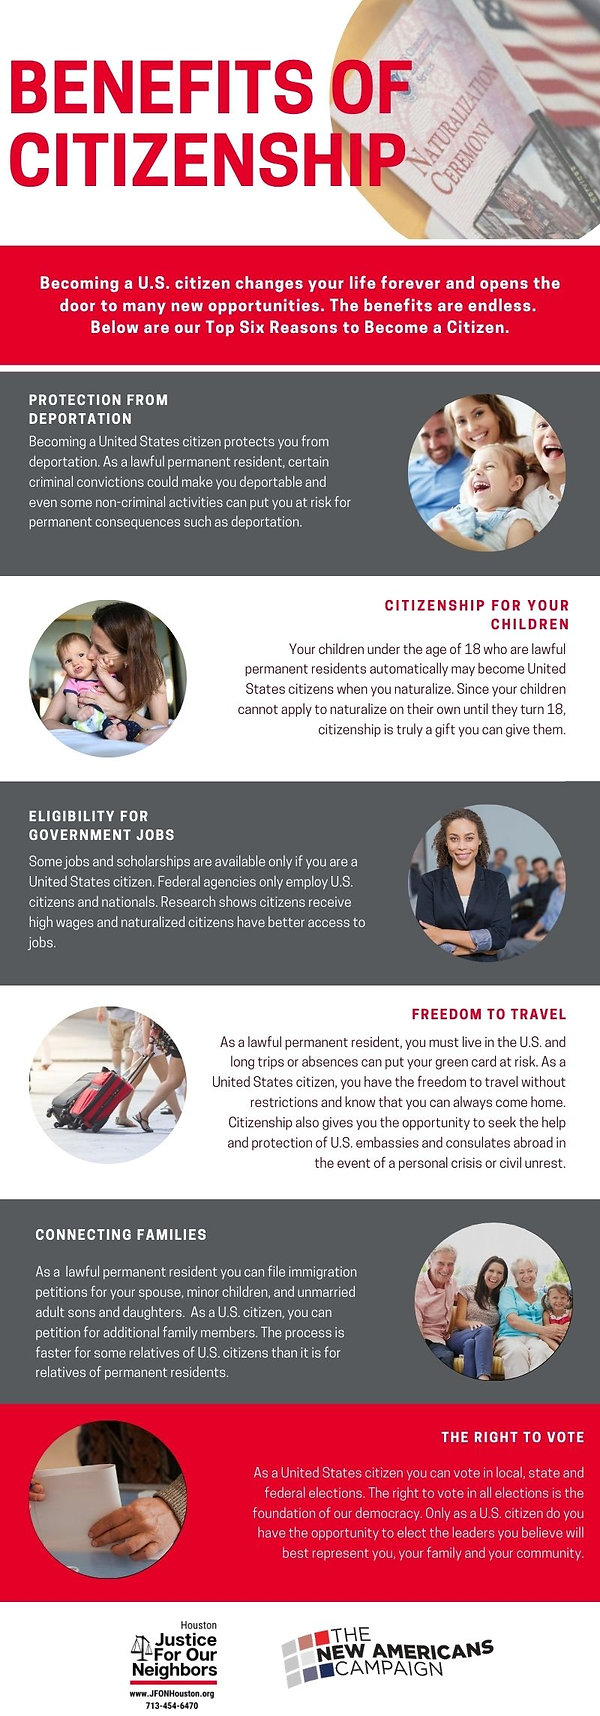 Benefits of Citizenship.jpg